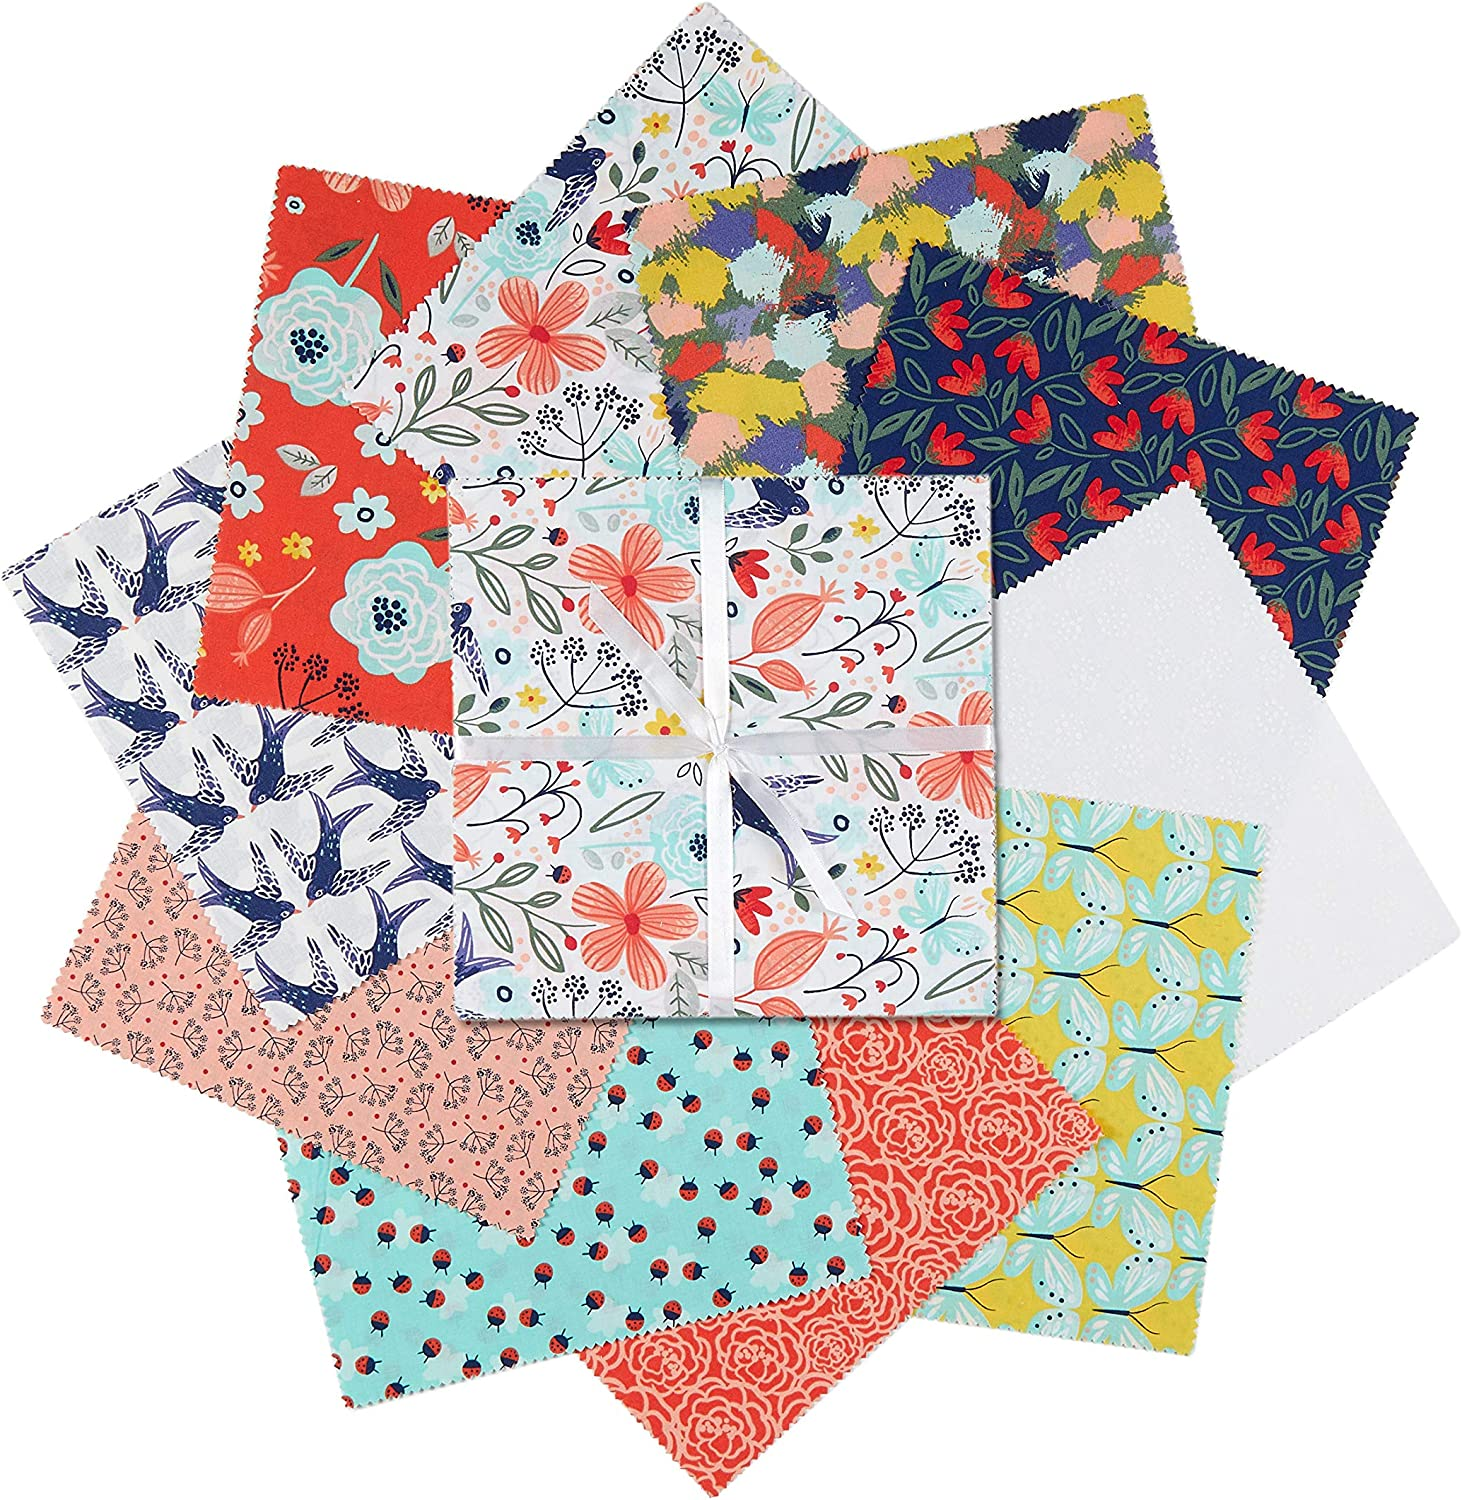 Fabric Editions 3 Wishes Madison 10in Squares 20Pcs Multi